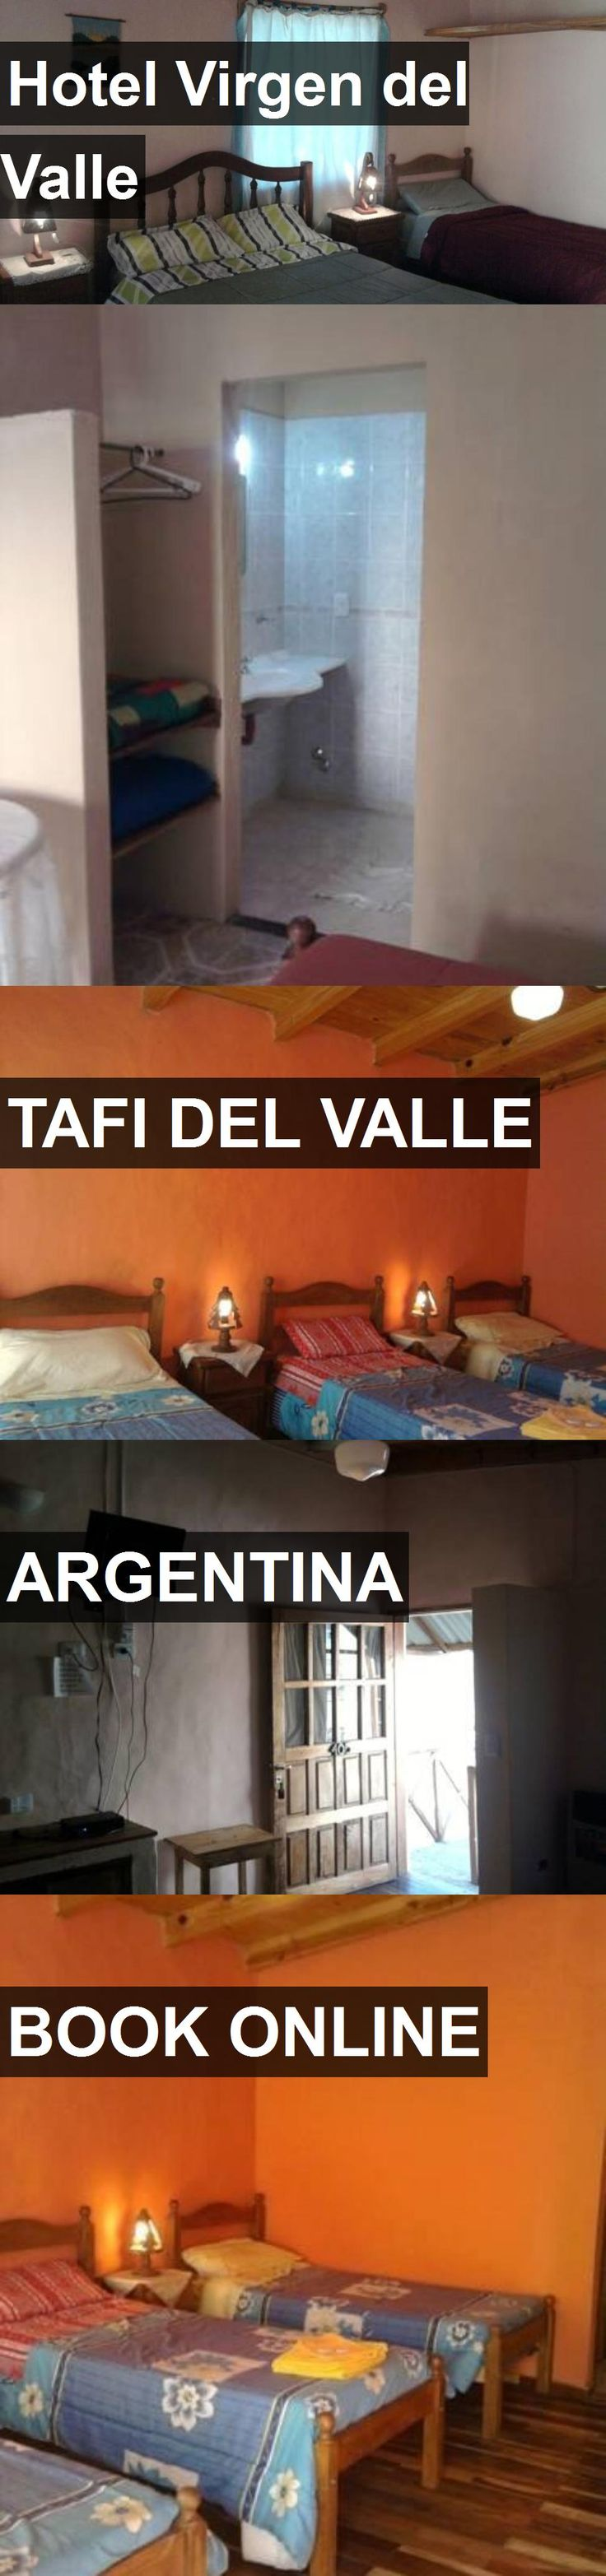 Hotel Hotel Virgen del Valle in Tafi del Valle, Argentina. For more information, photos, reviews and best prices please follow the link. #Argentina #TafidelValle #HotelVirgendelValle #hotel #travel #vacation